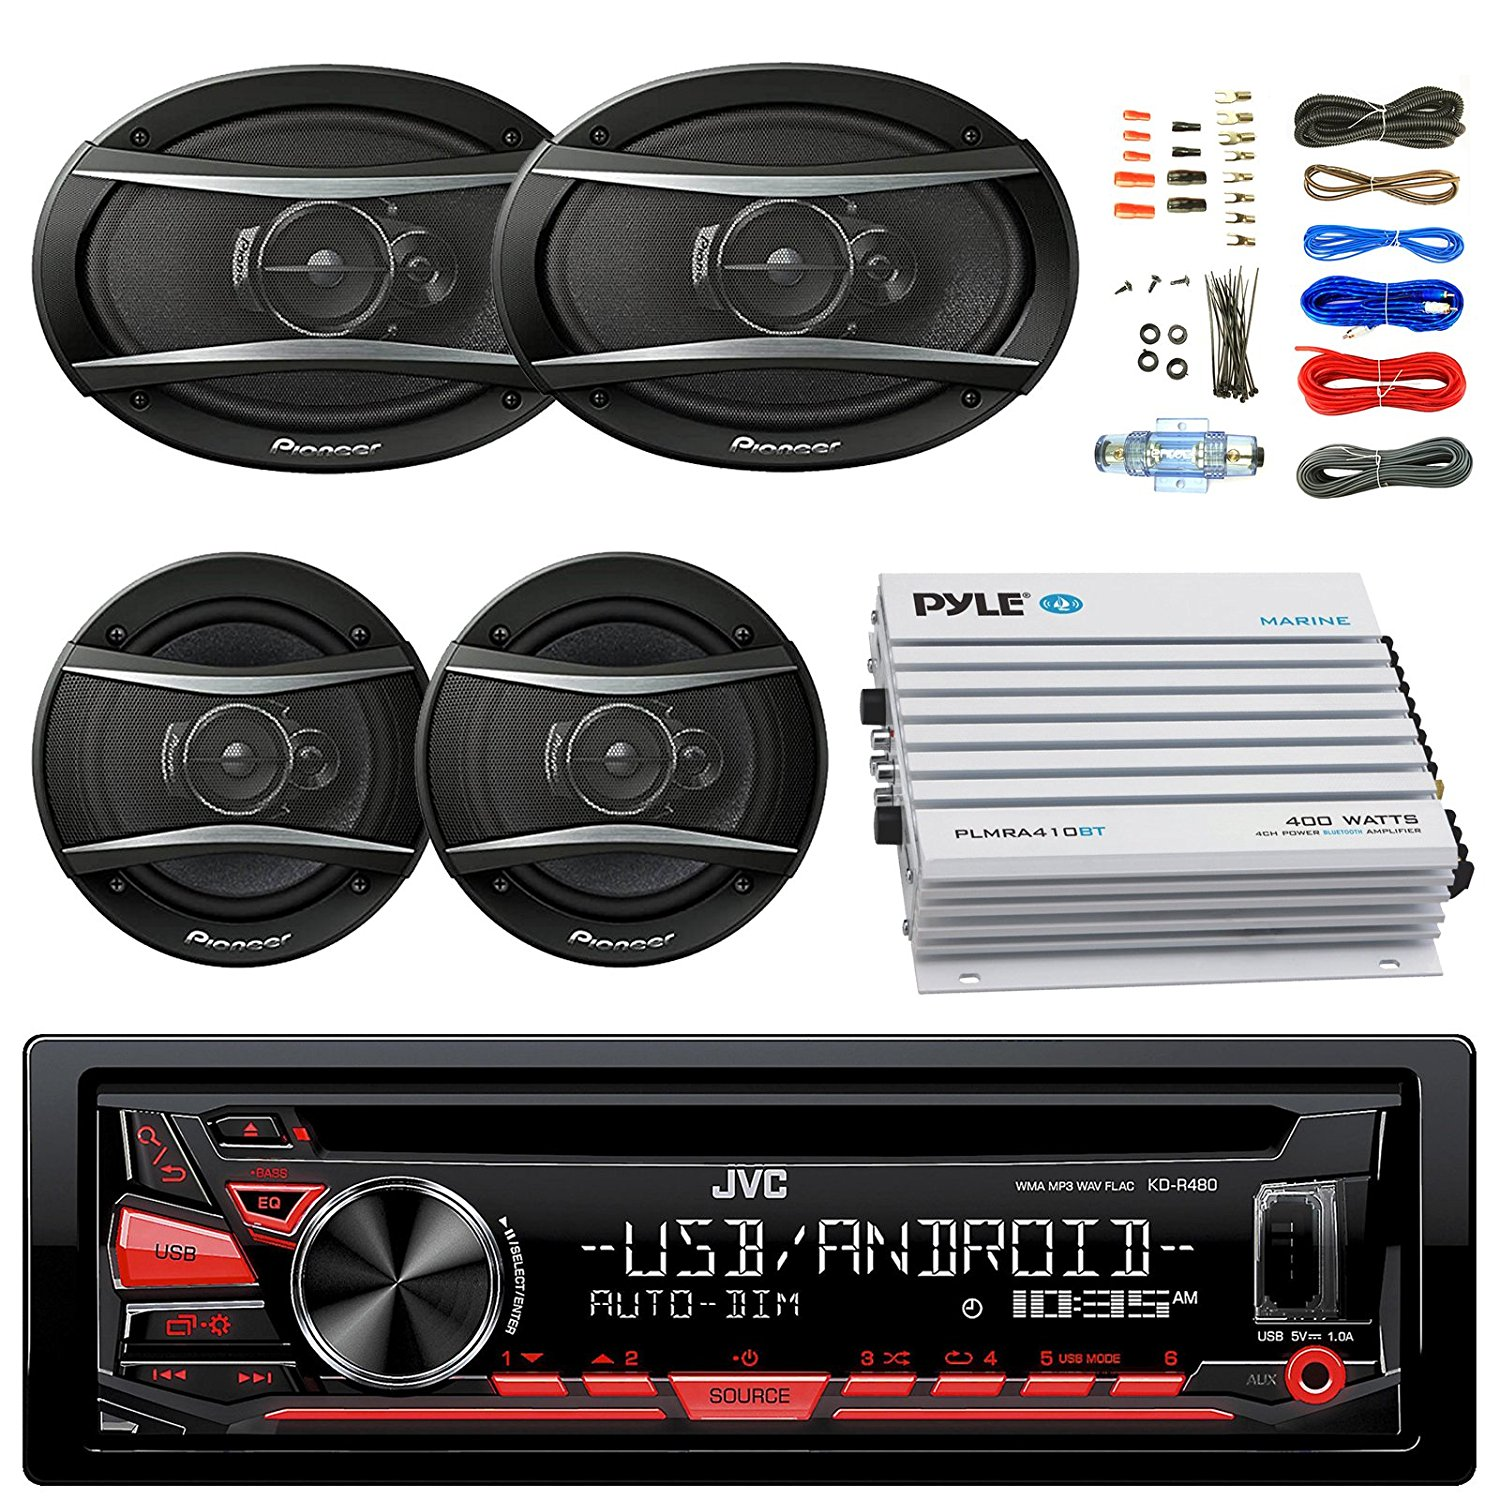 """JVC KDR480 Car Bluetooth Radio USB AUX CD Player Receiver - Bundle With 2x TSA1676R 6.5"""" 3-Way Car Audio Speakers - 2x 6.5""""-6.75"""" 4-Way Stereo Speaker + 4-Channel Amplifier + Amp Kit"""